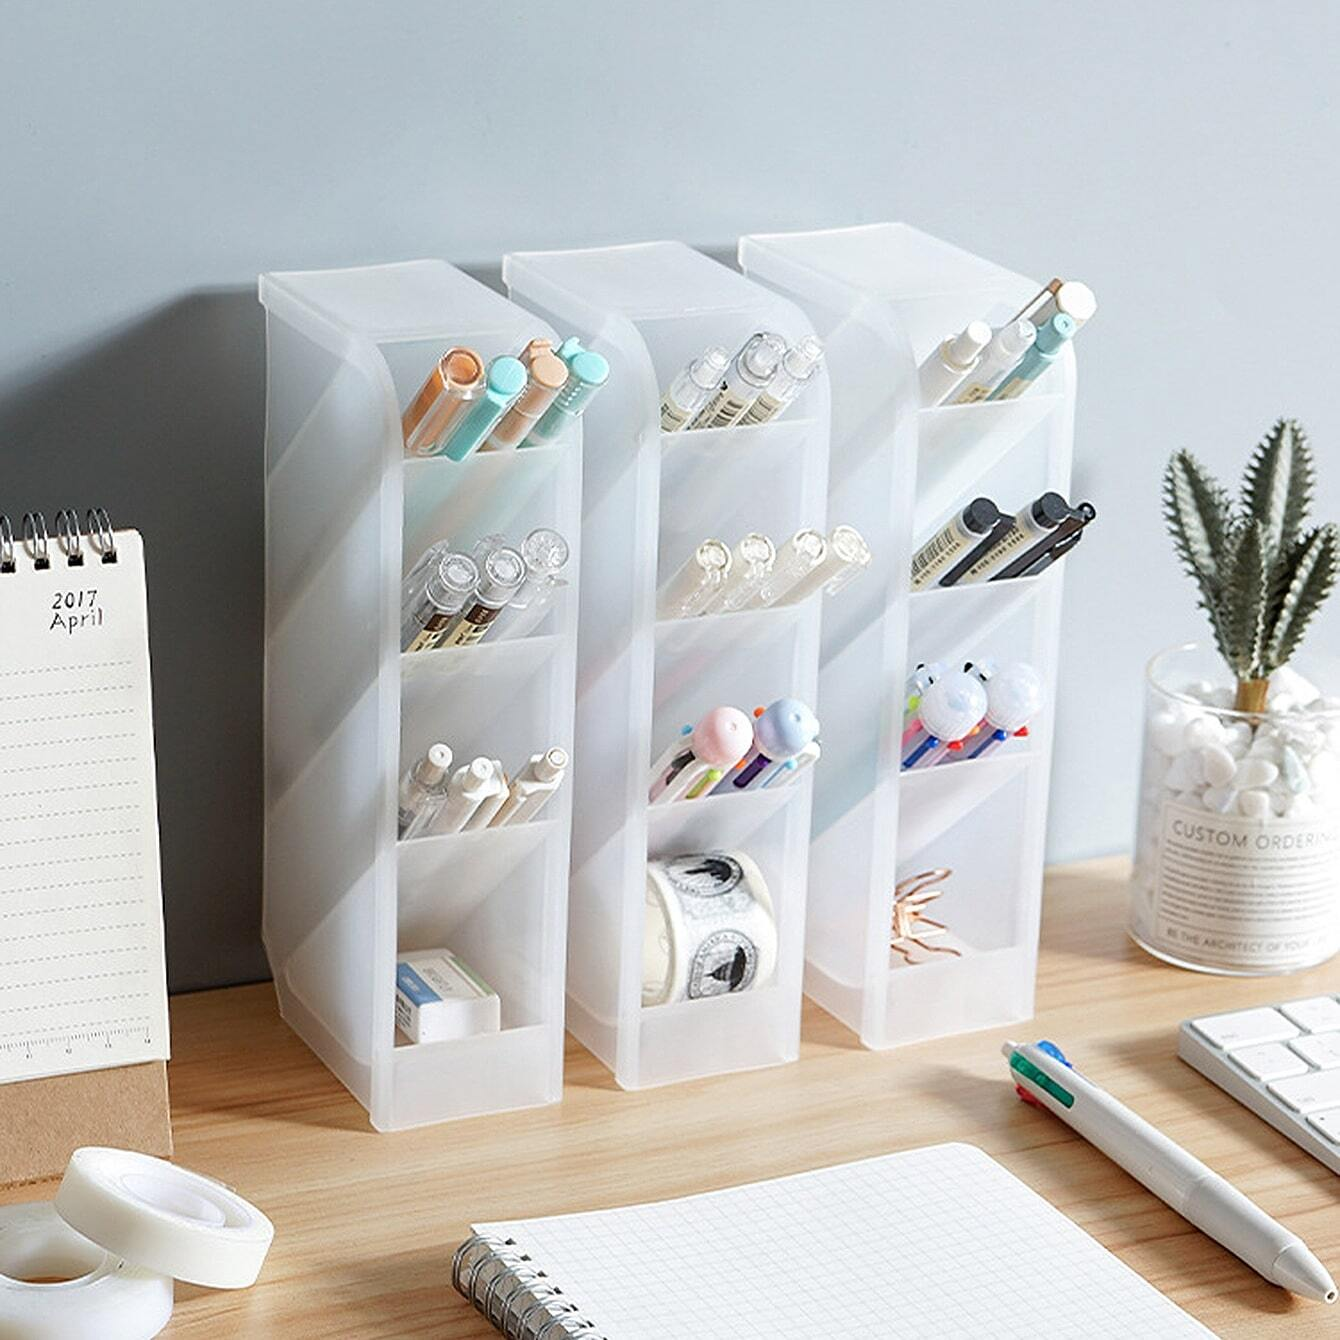 SHEIN coupon: 4 Grid Pencil Holder 1pc